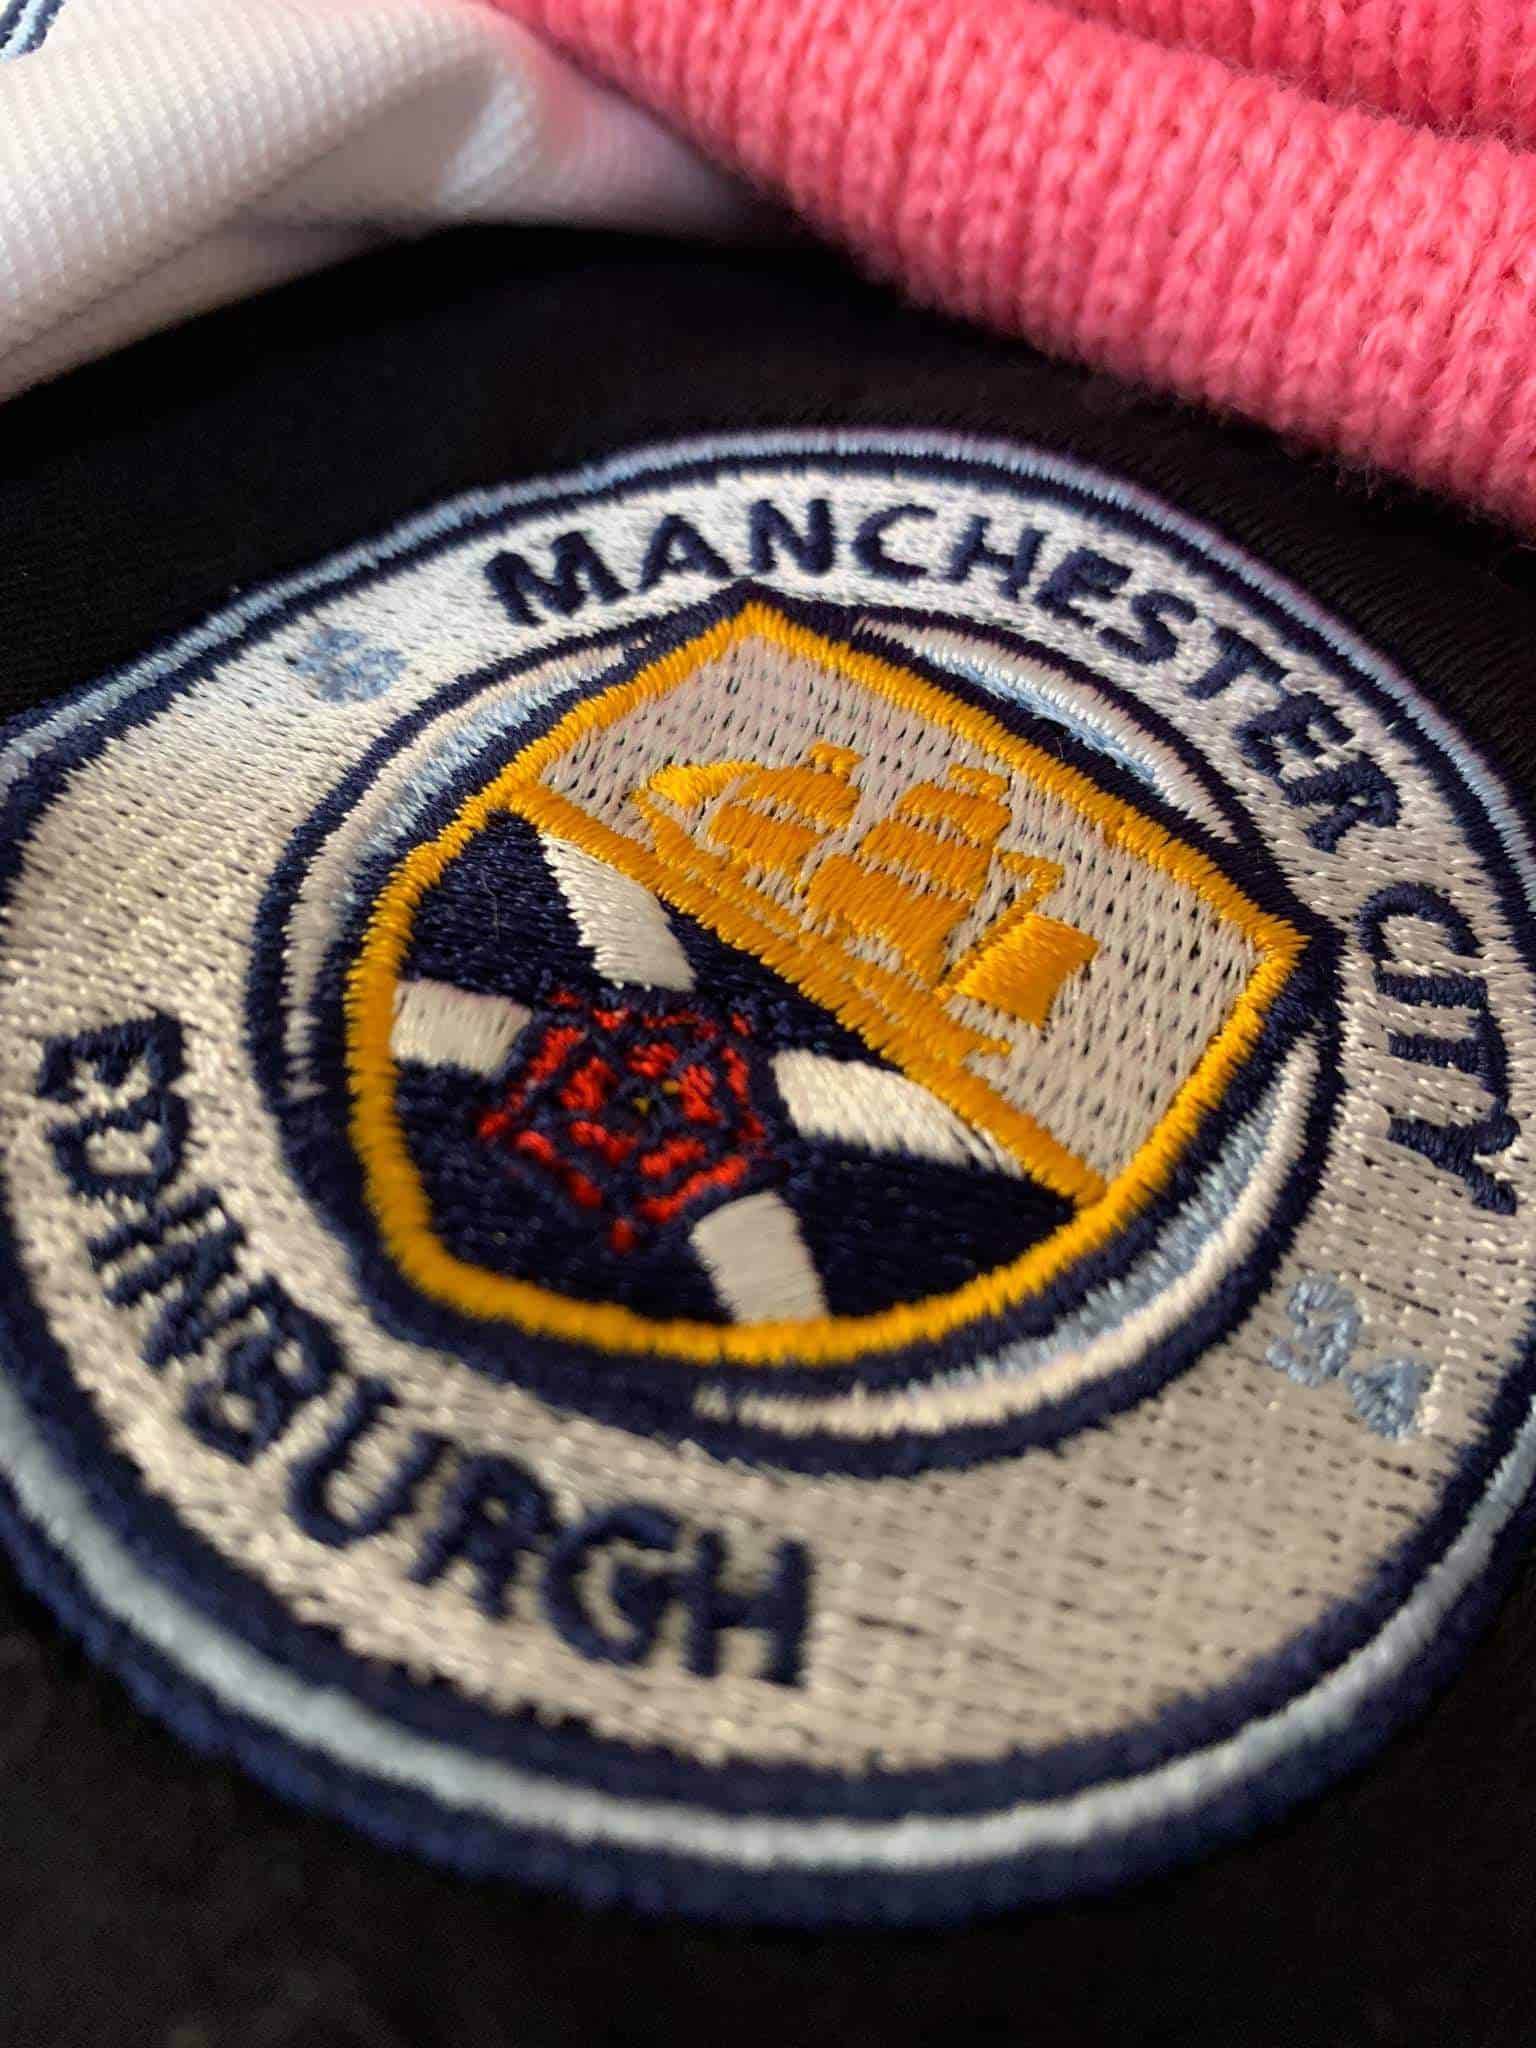 Edinburgh Manchester City Supporters Club